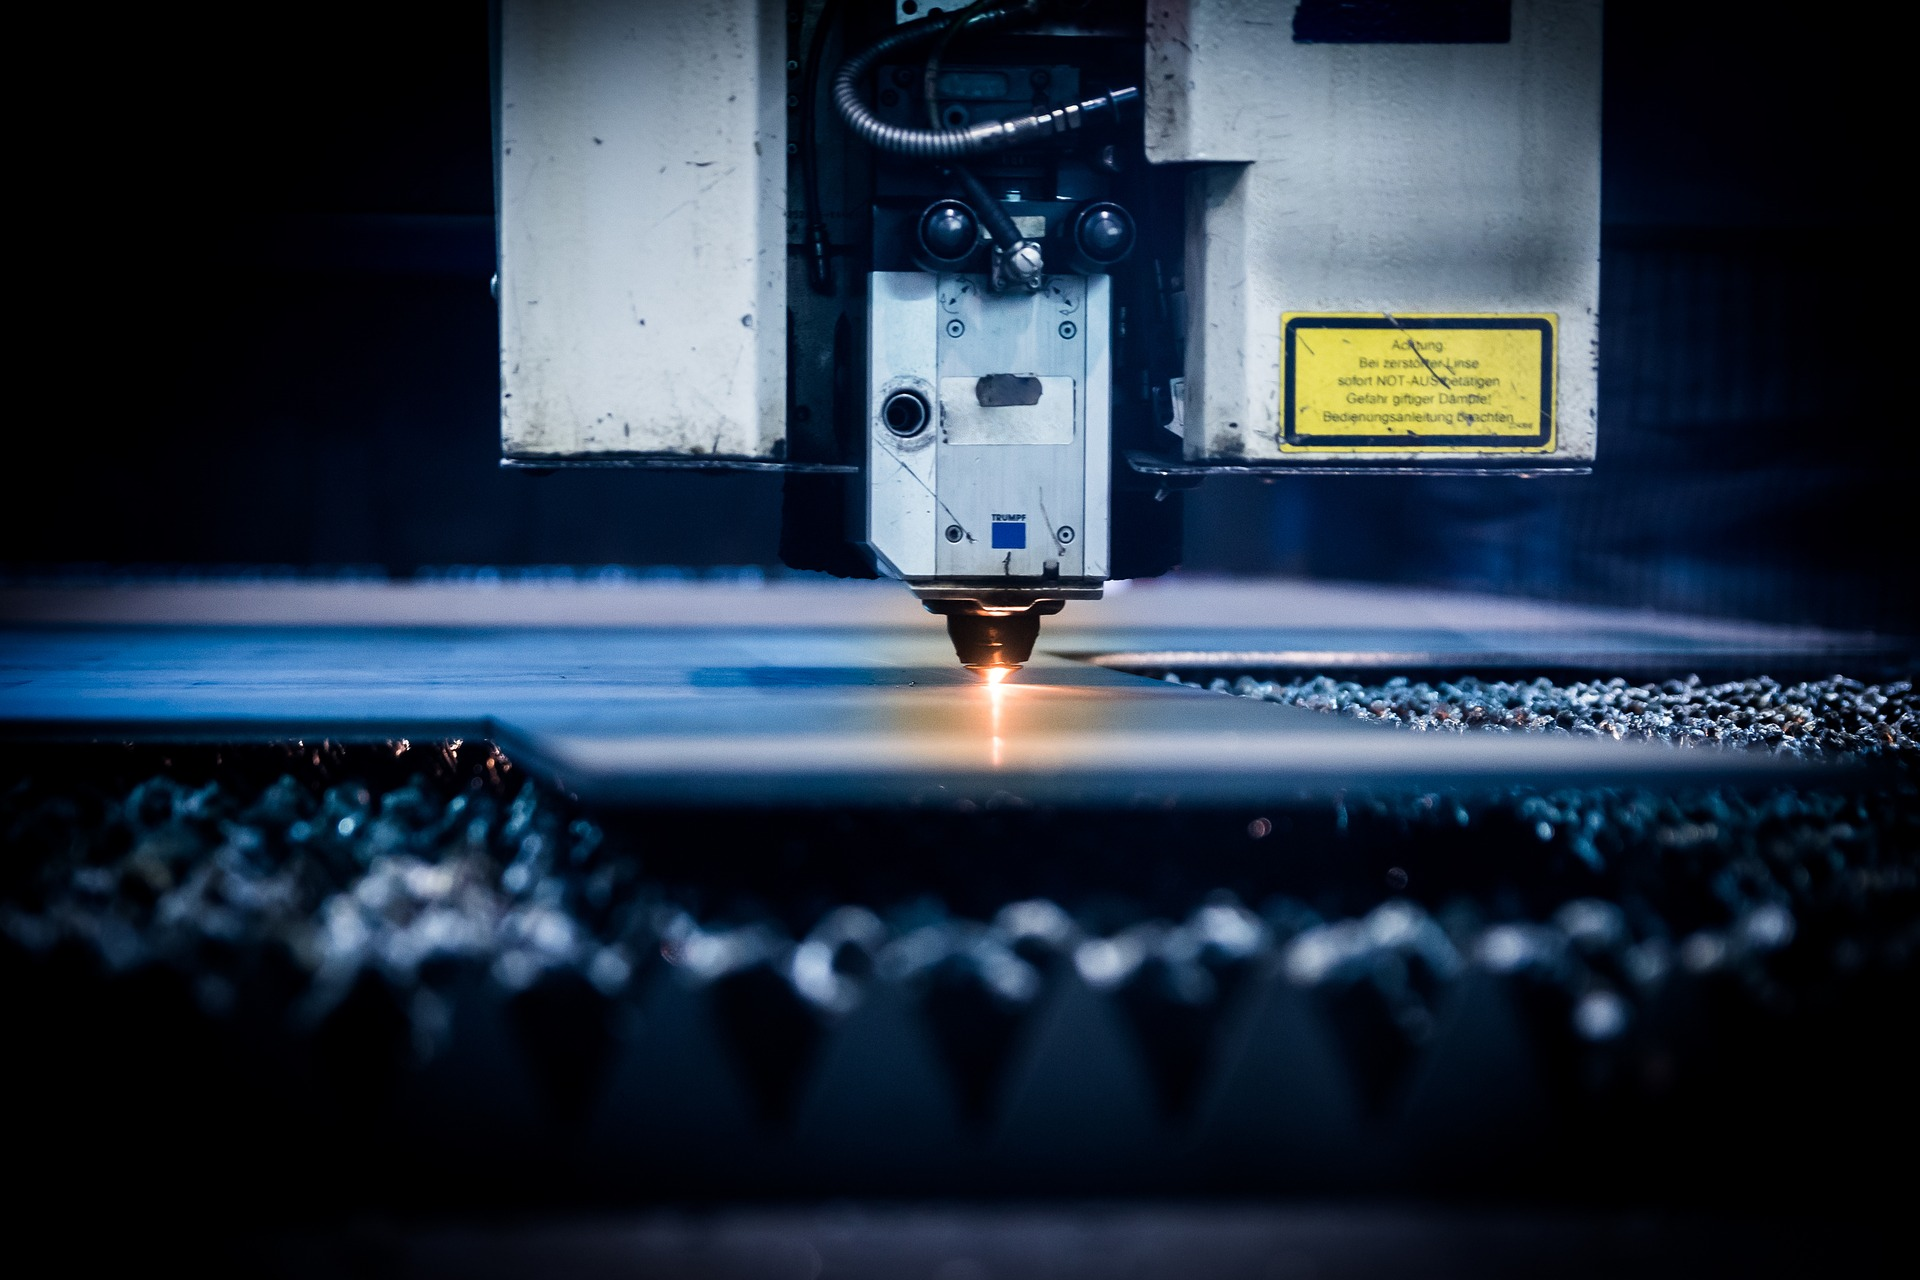 All of the following are advantages of contract manufacturing except for some of the examples aren't that much of an advantage anymore since there are tools out there that can help makers retain control during the manufacturing processes.